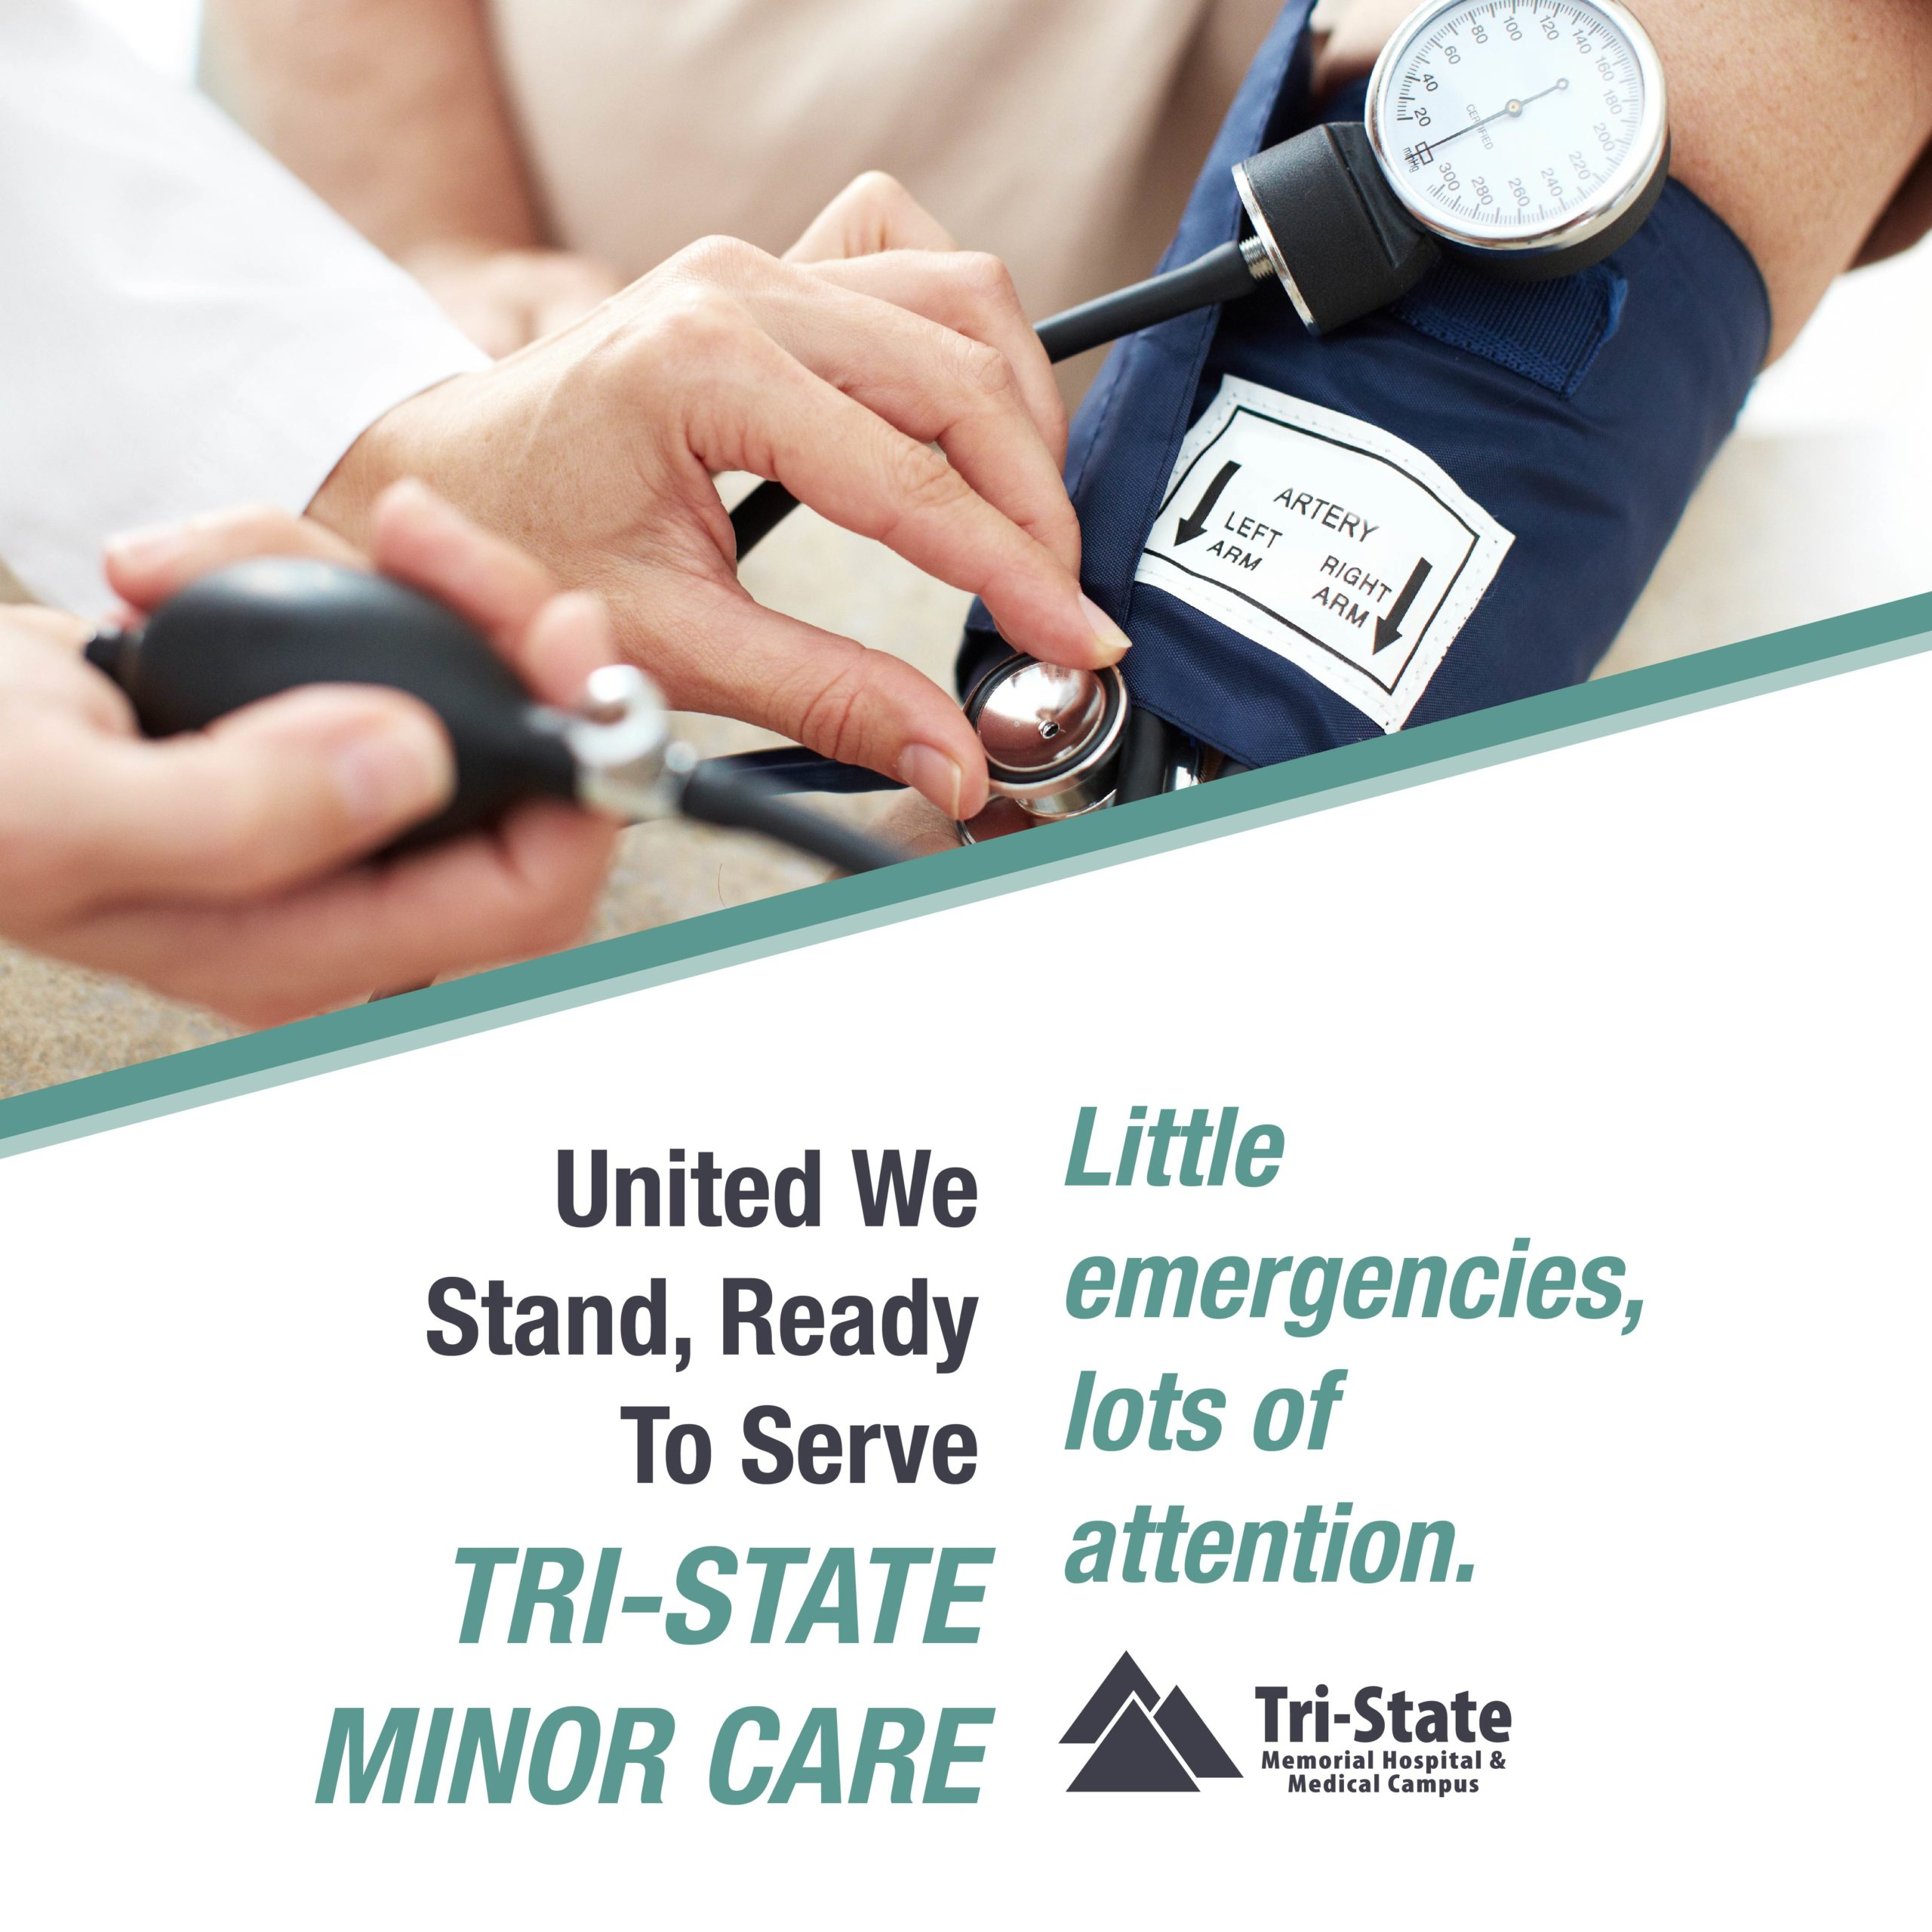 Minor Care Center: Ready to Serve